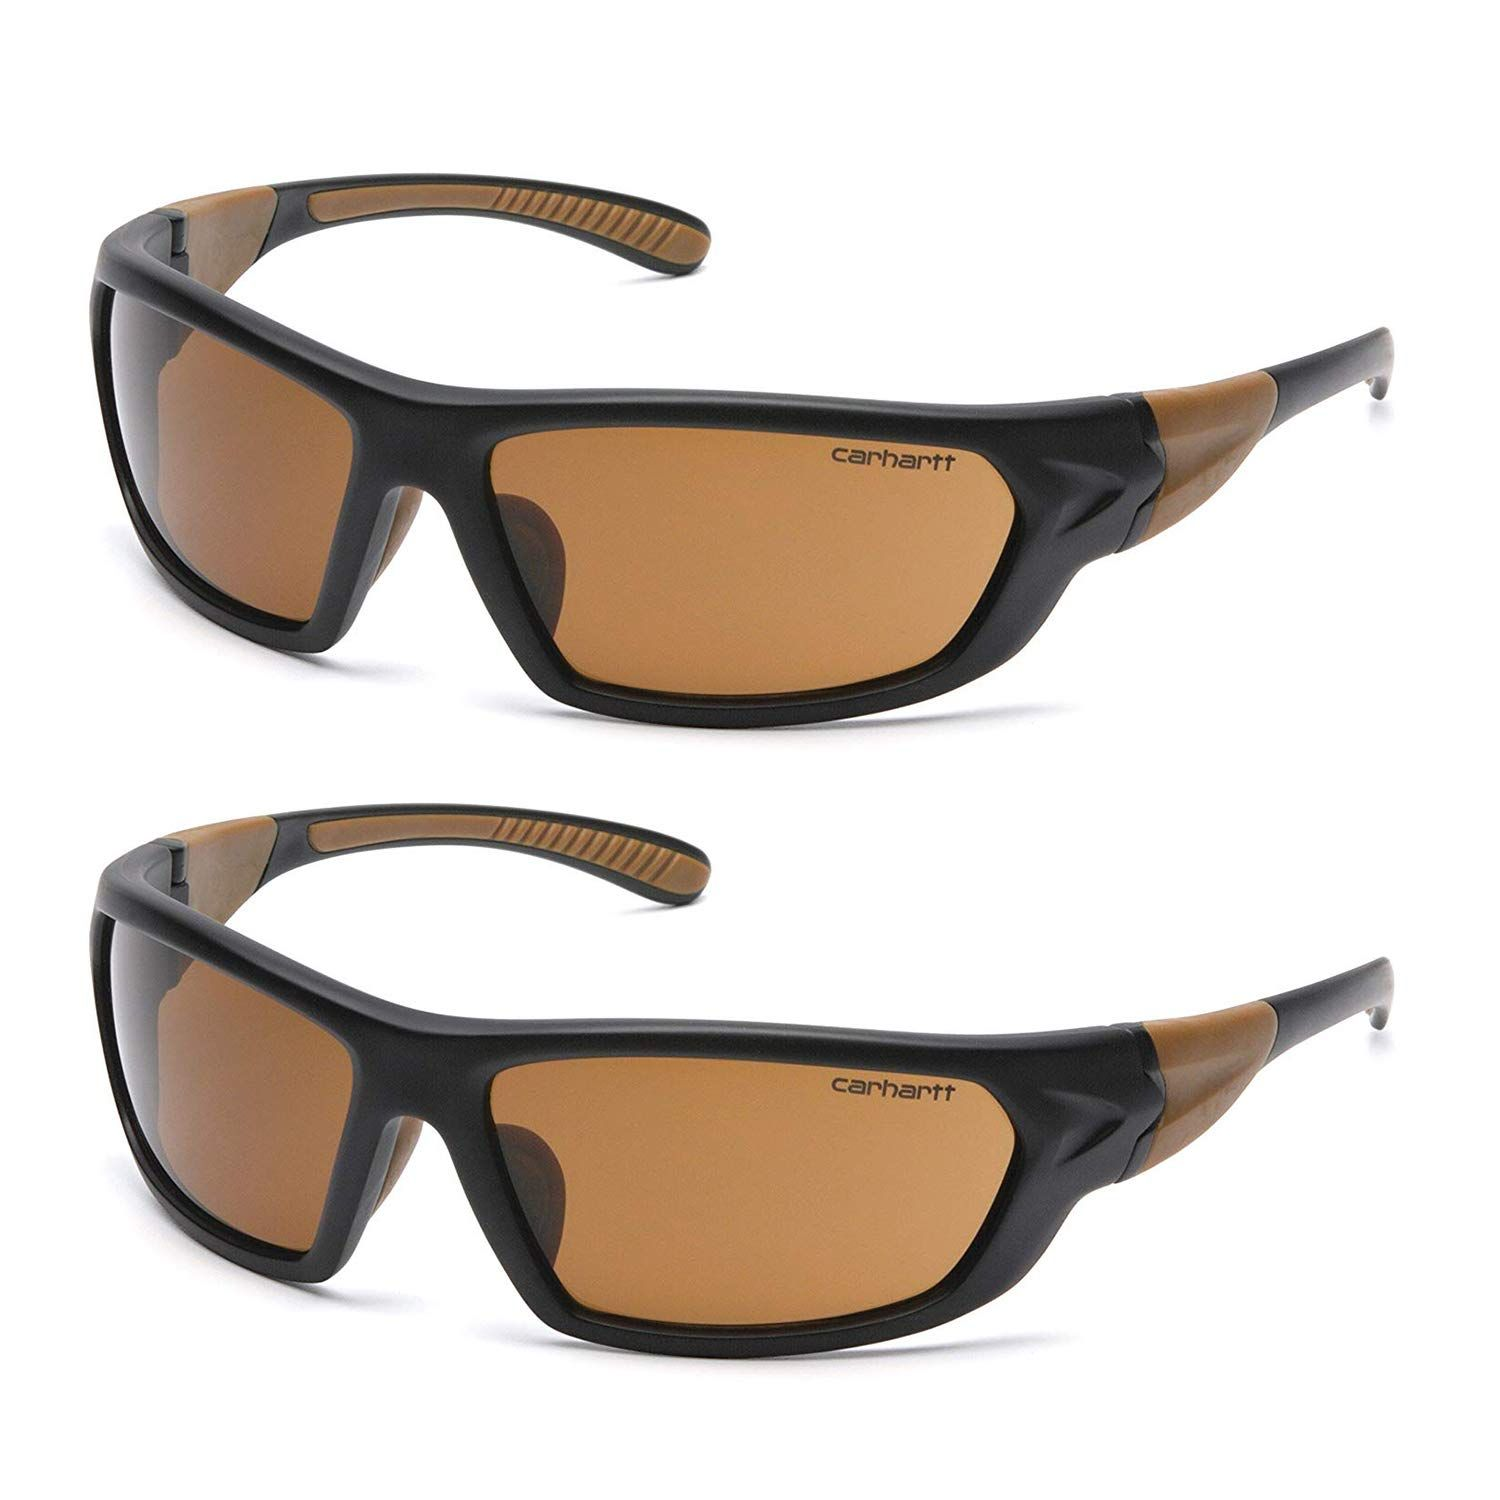 Carhartt carbondale safety sunglasses with sandstone